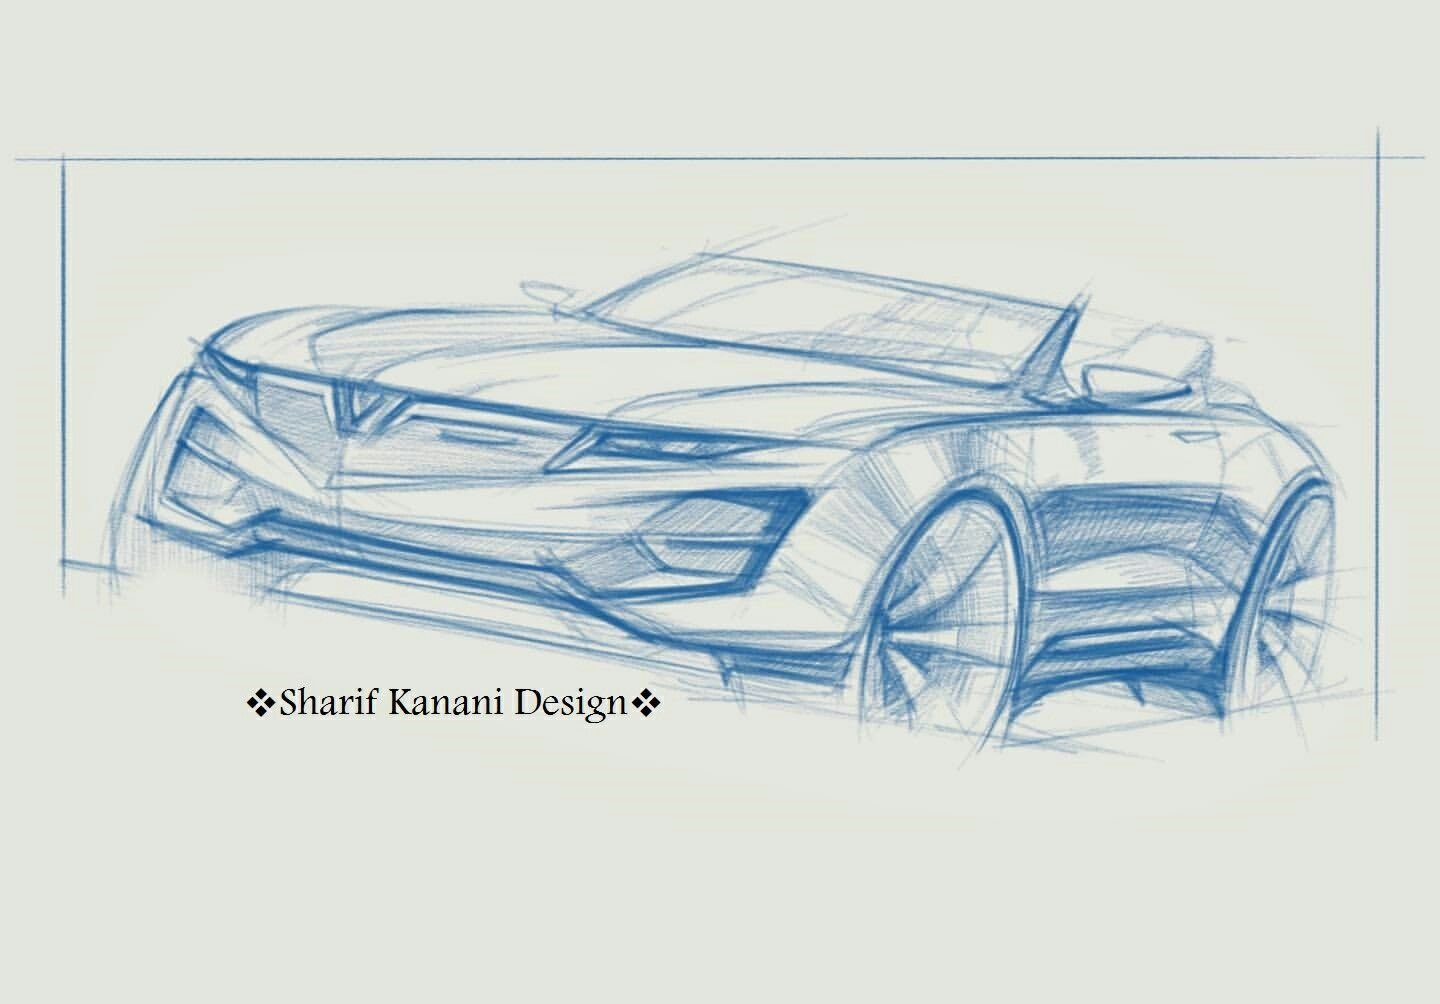 Free Hand Sketch of Convertible Model 02 . #handsketch #carsketch #cardesign #automobile #vehicle #art #pencil #sketch #draw #cardesigner #sketchbook #convertible